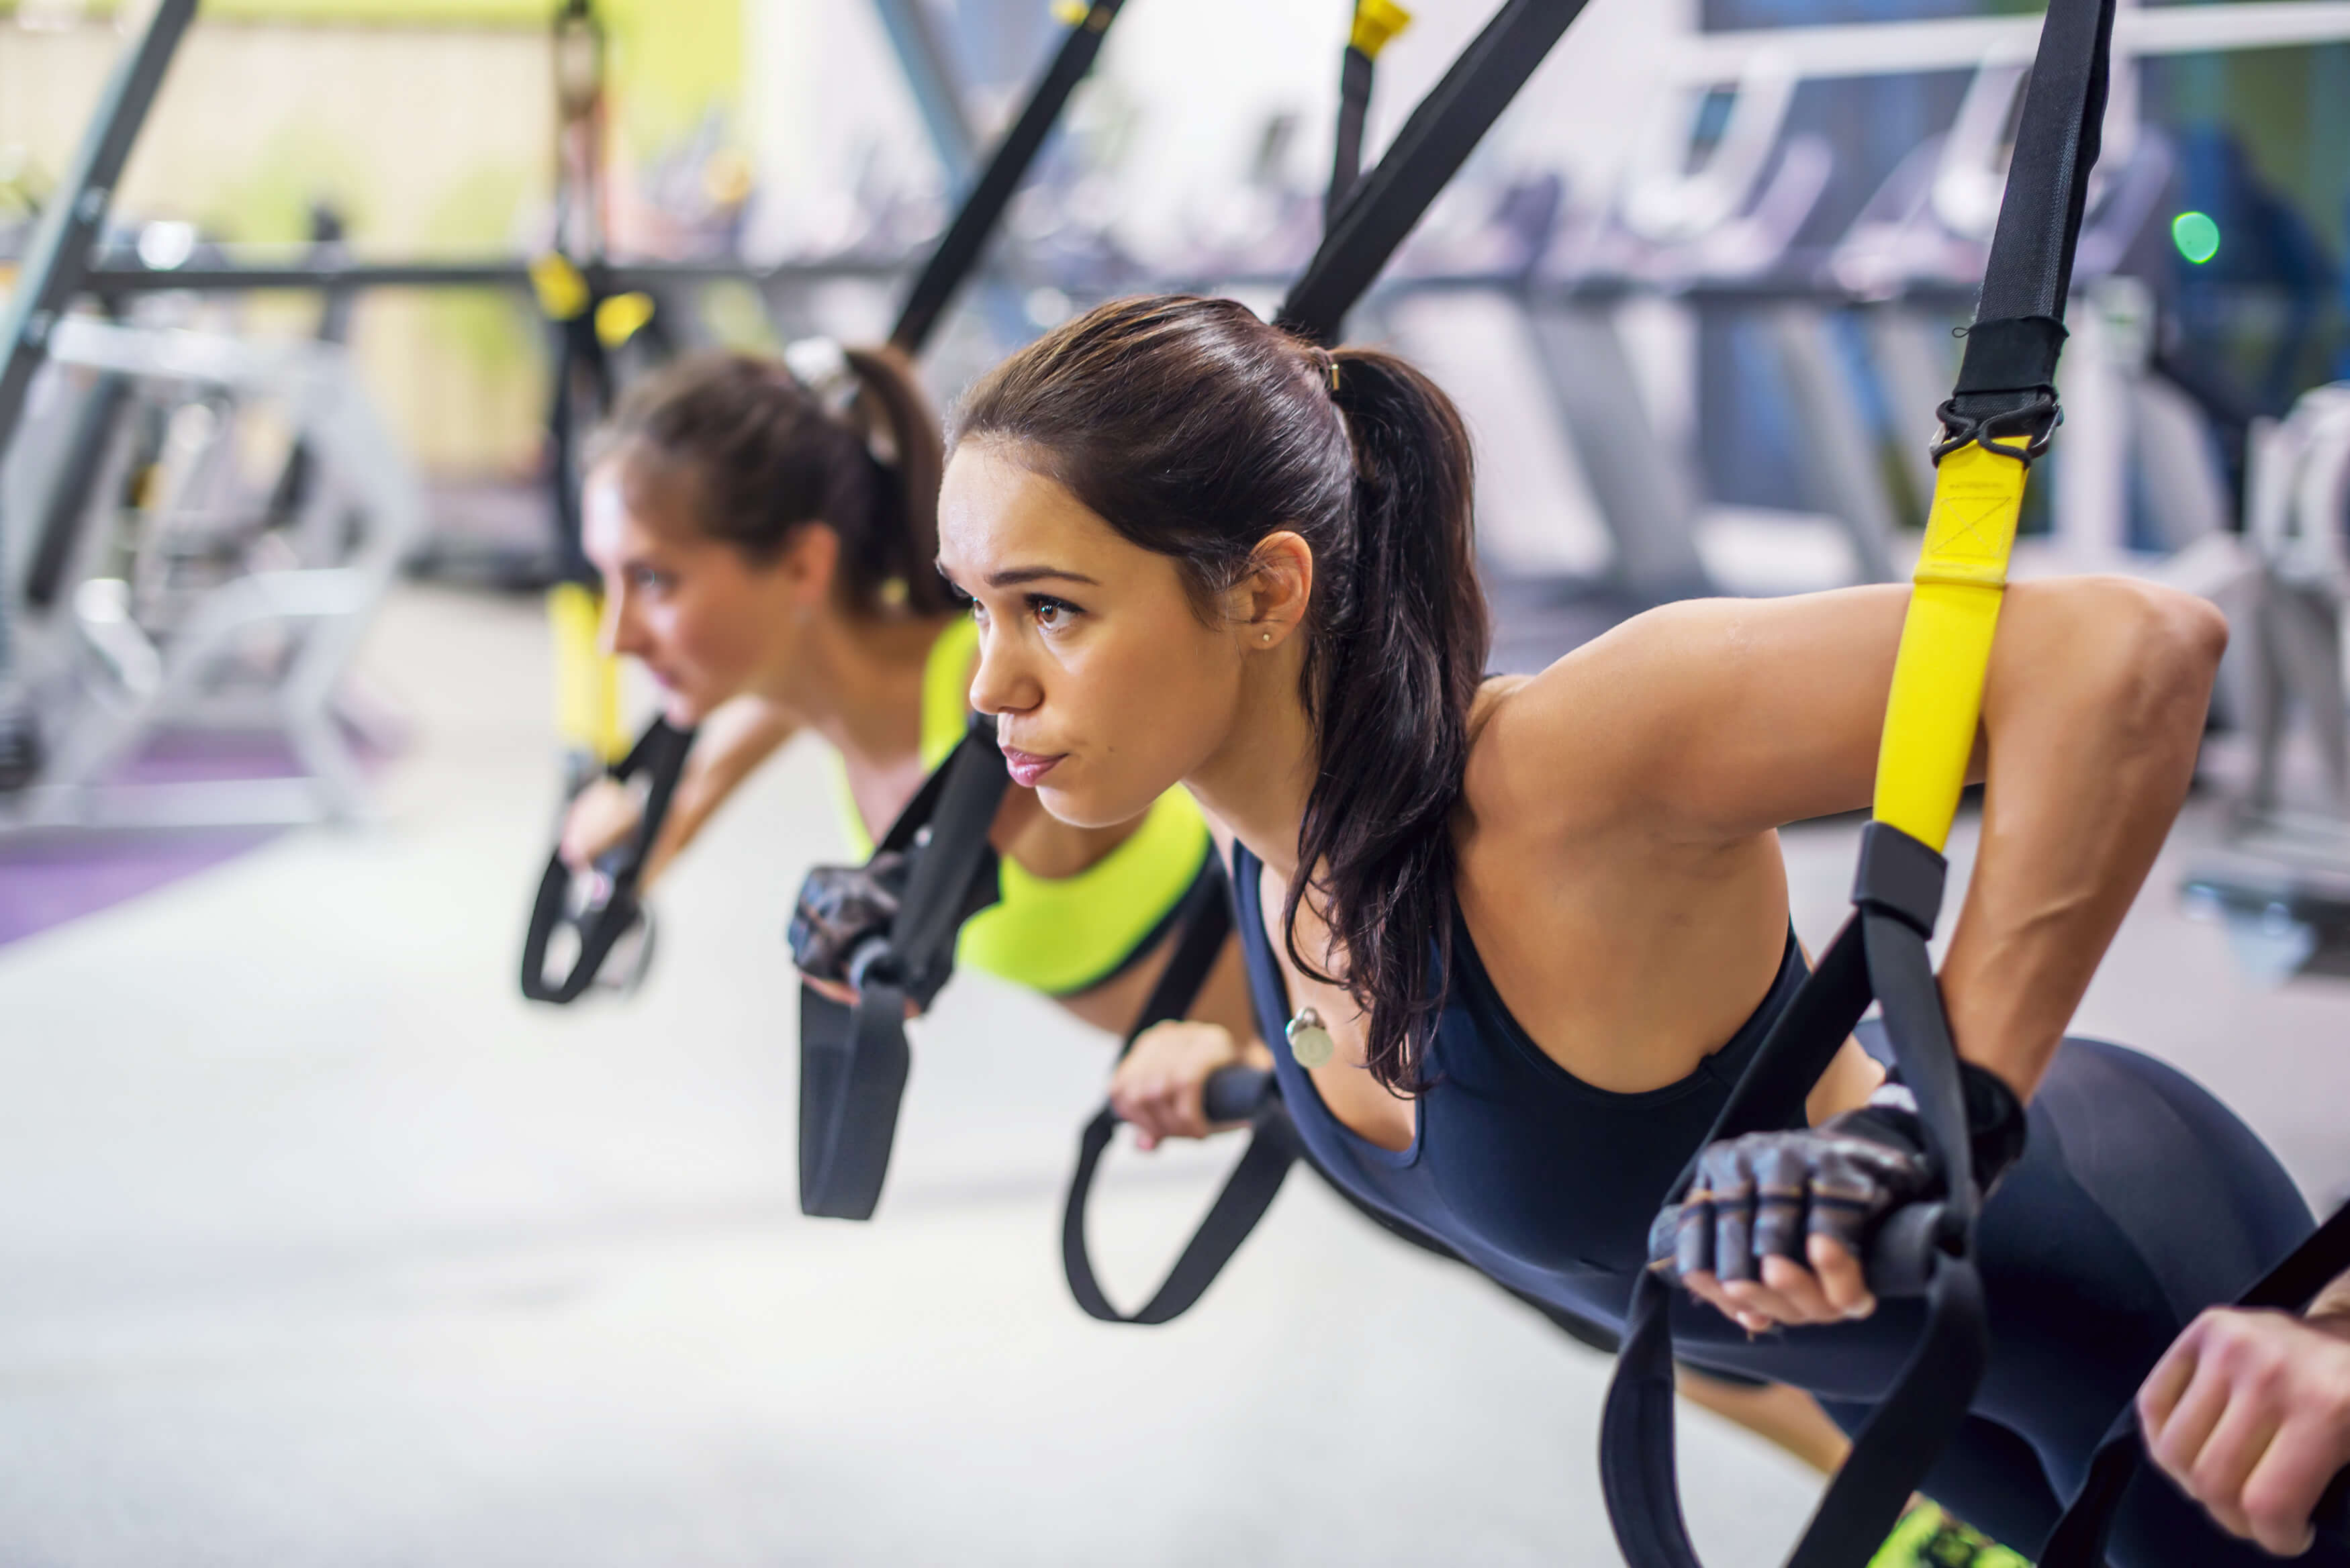 group fitness trx everyday athlete orange county sports chiropractor